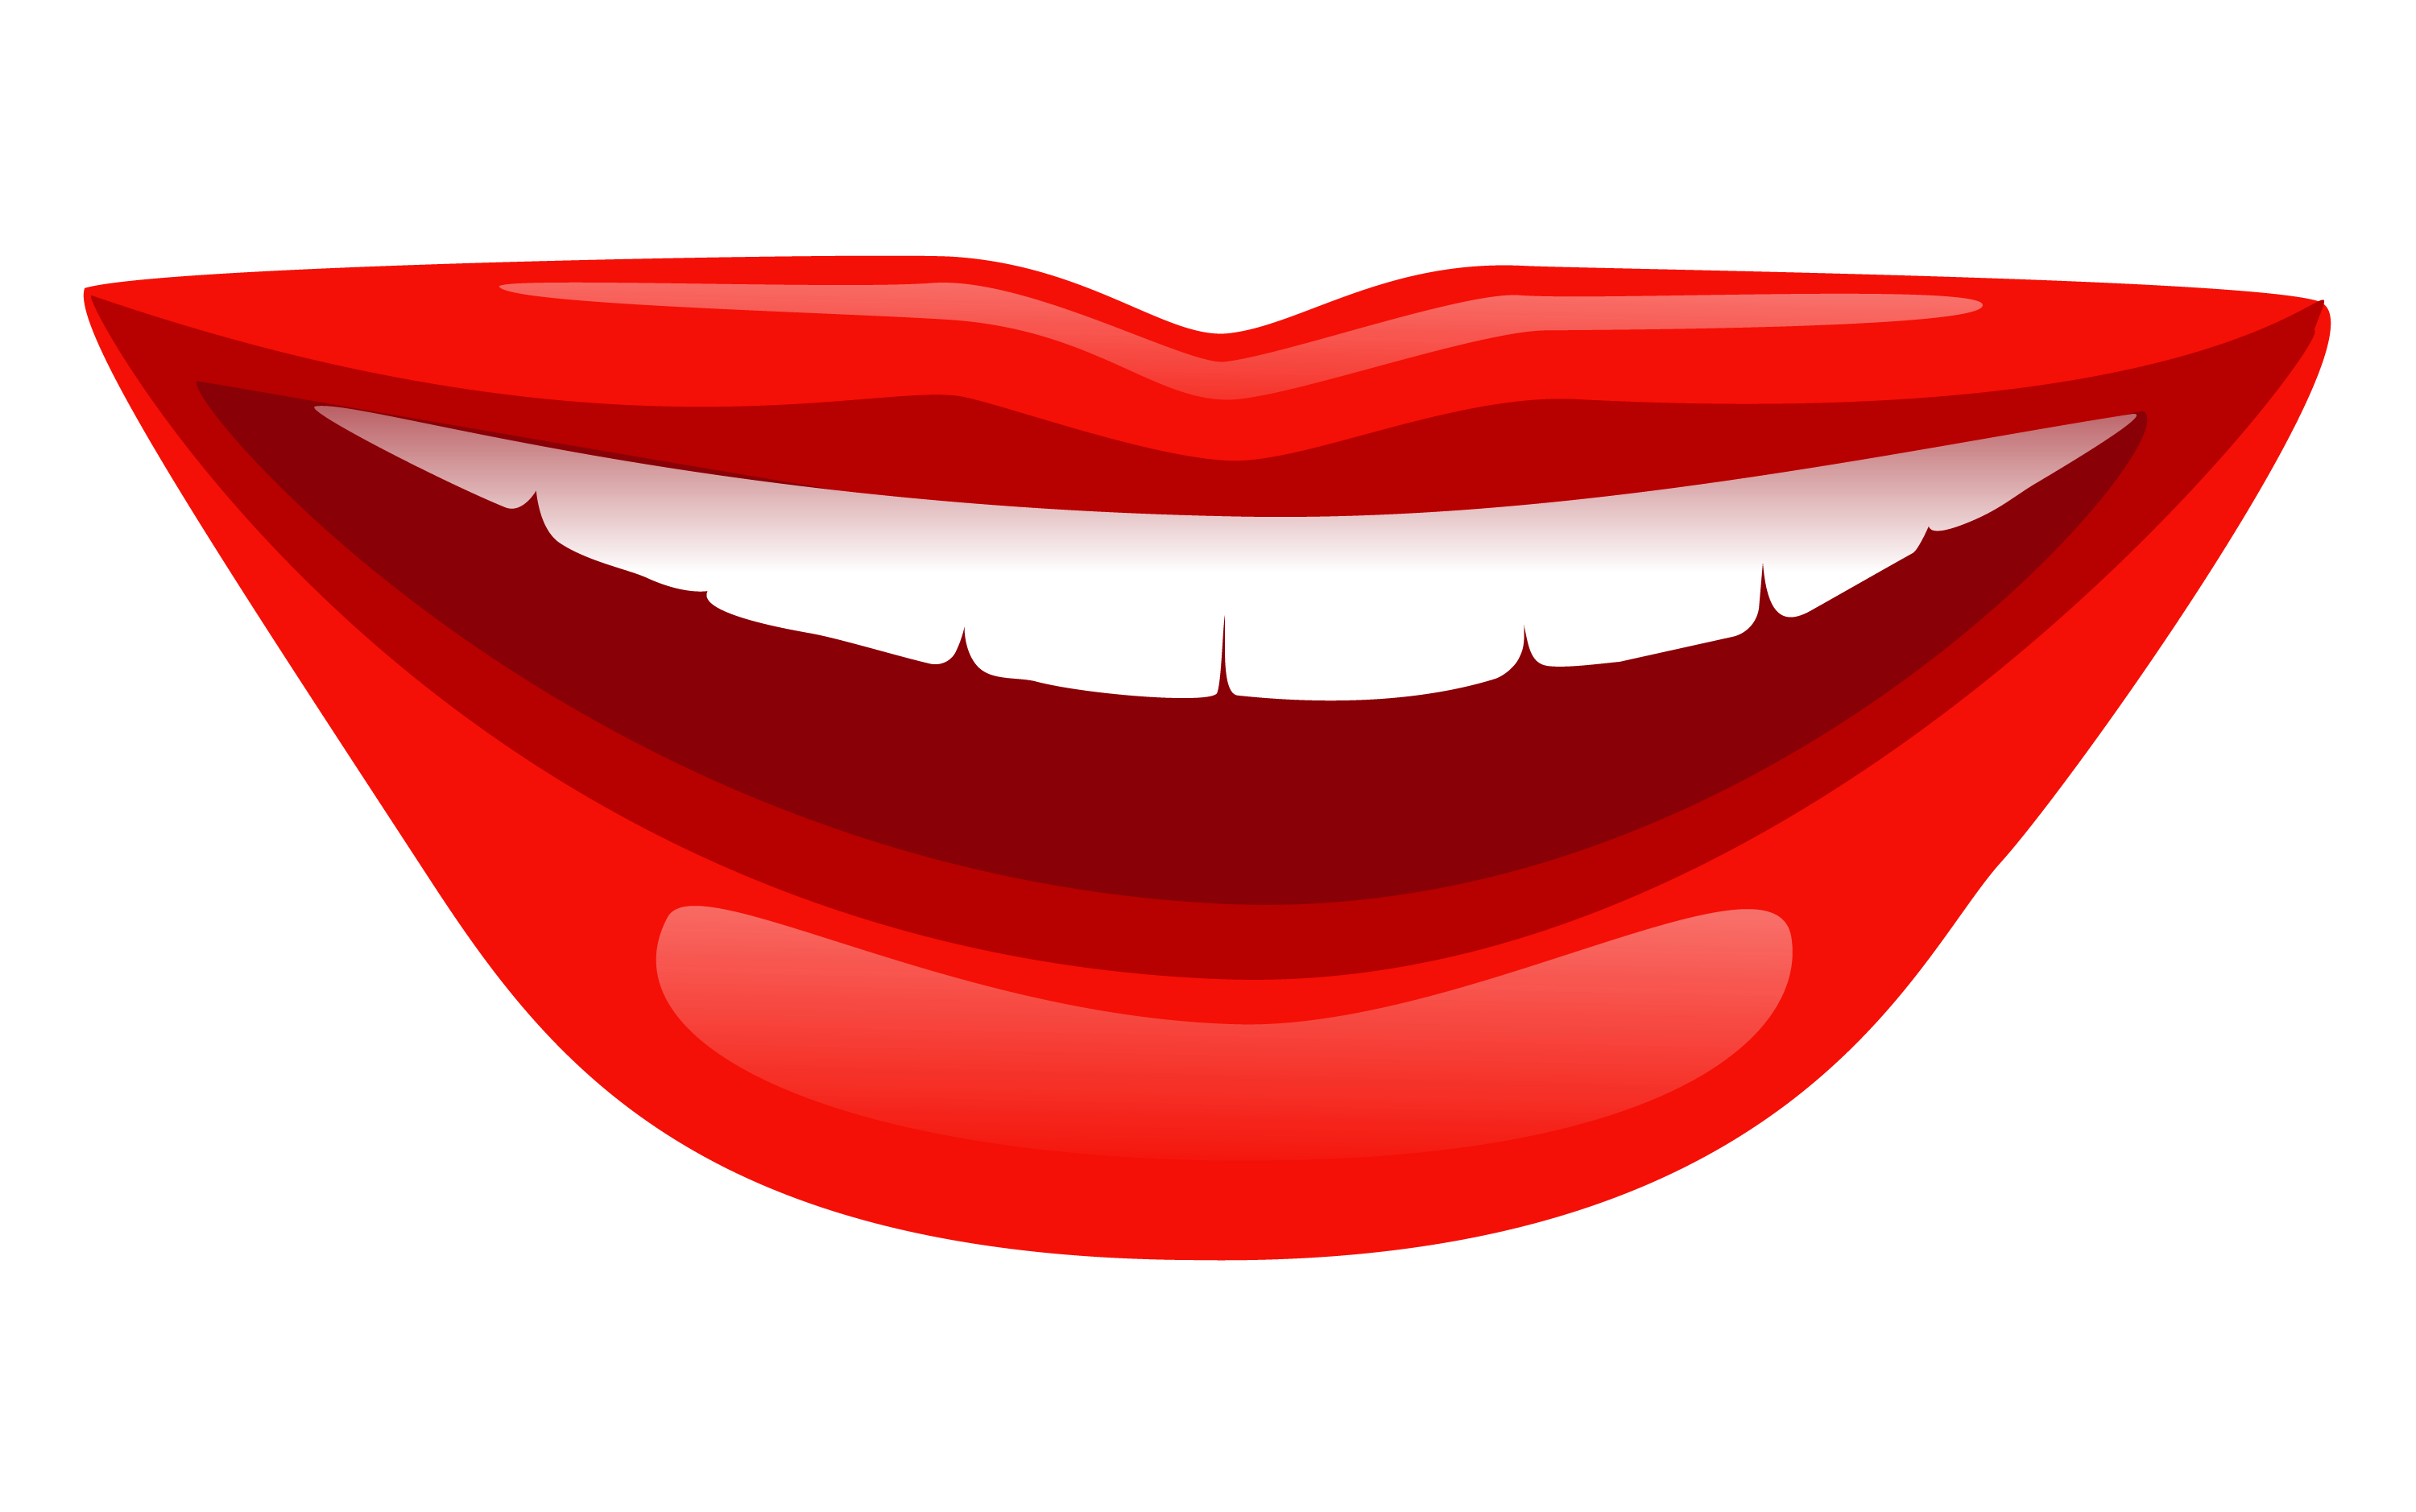 Smile Lips PNG-PlusPNG pluspng.com-3000 - Smile Lips PNG - Smiling Lips PNG HD